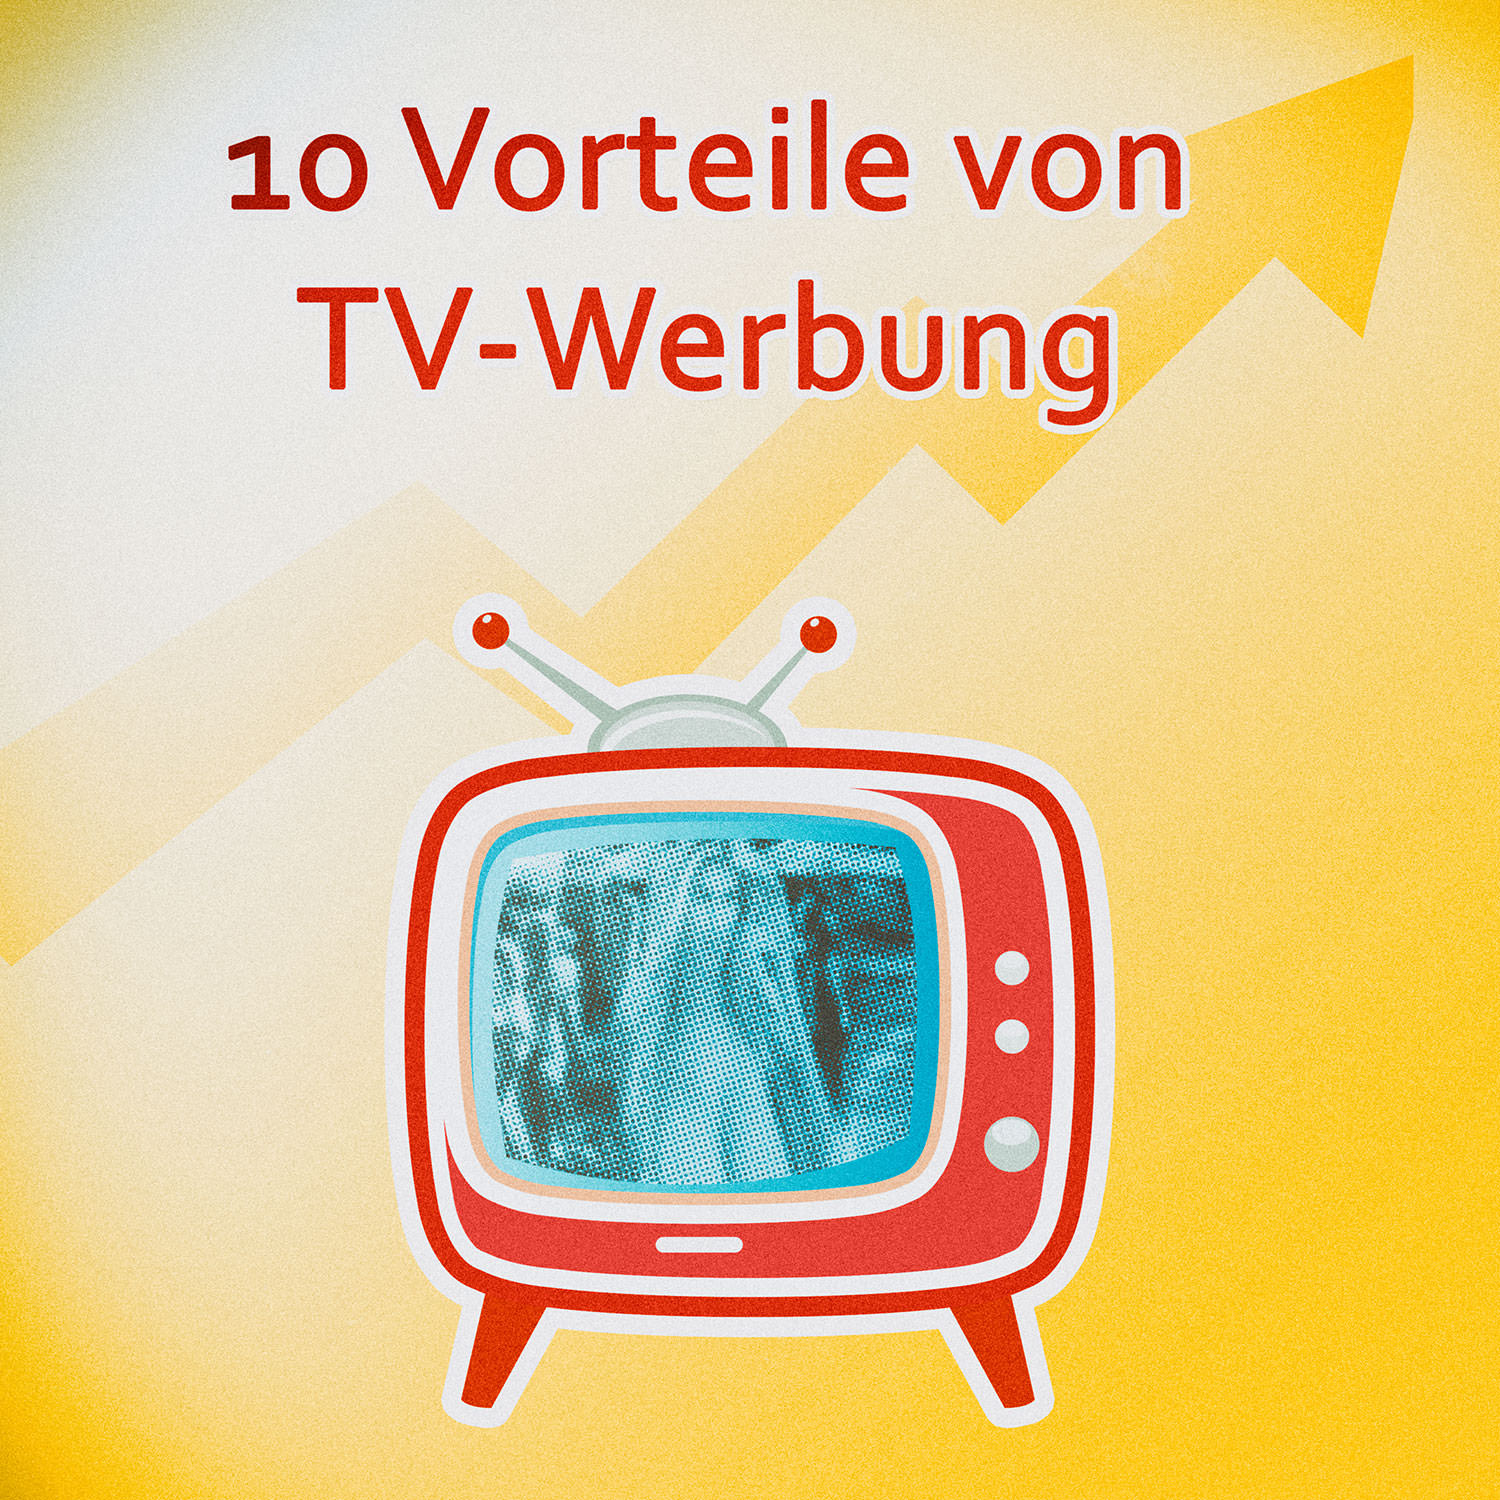 aus der tv werbung interesting yard hands mit krallen set stck original aus tv werbung with aus. Black Bedroom Furniture Sets. Home Design Ideas